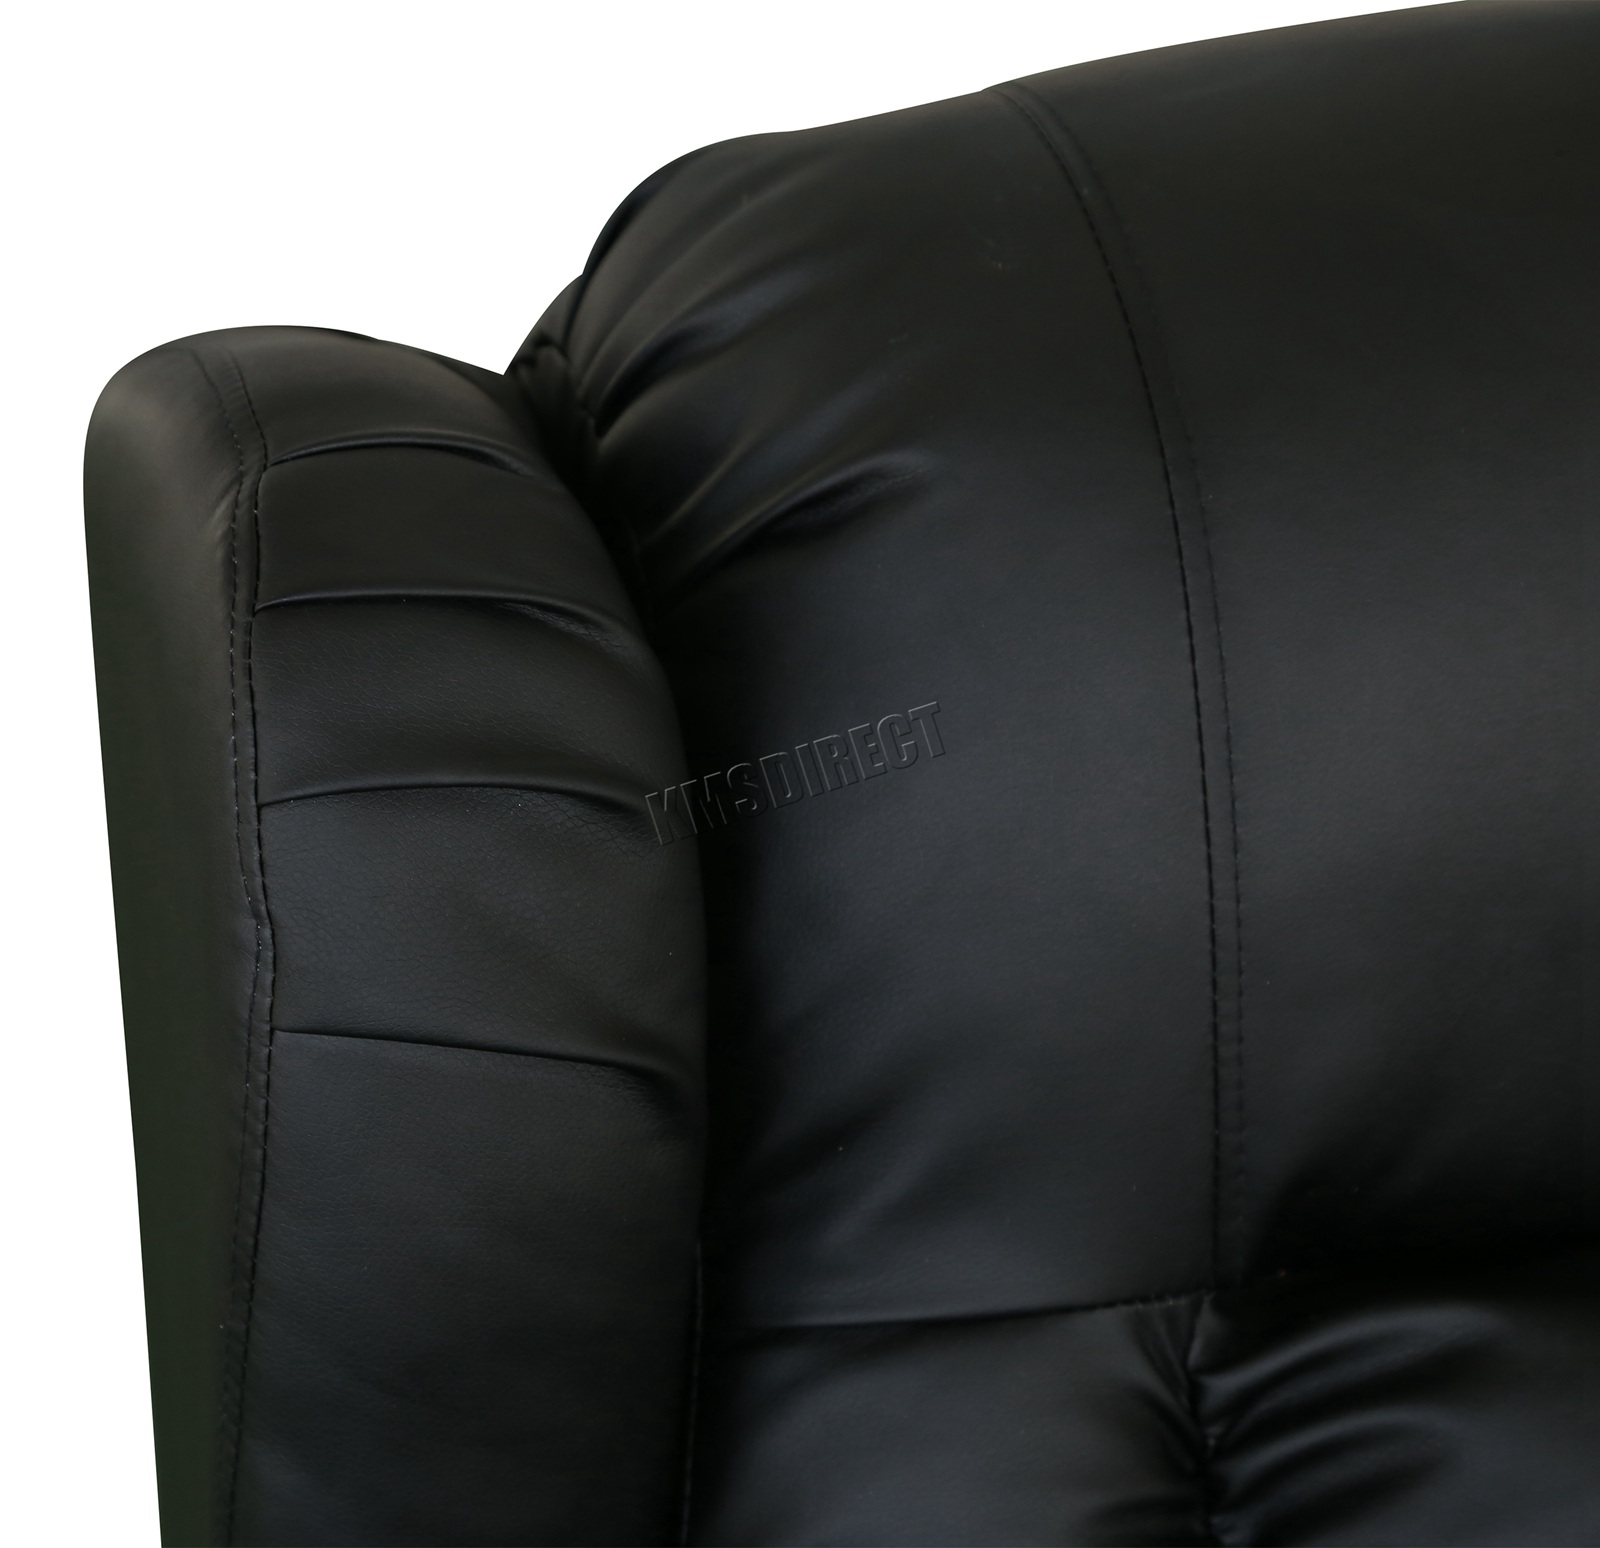 WESTWOOD-Leather-Recliner-Armchair-Swivel-Heated-chair-Massage-Gaming-Chair thumbnail 19